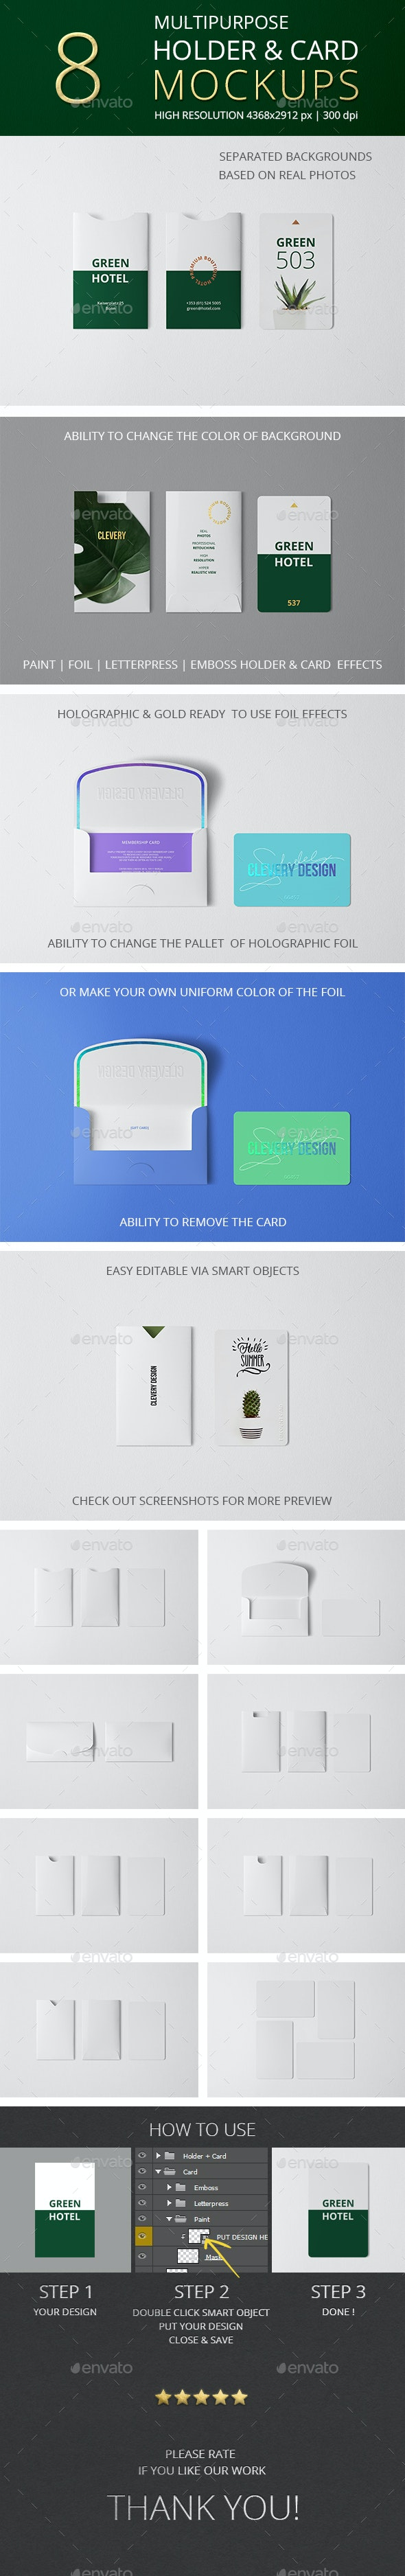 Multipurpose Holder & Card Mockup Vol 9.0 - Miscellaneous Print